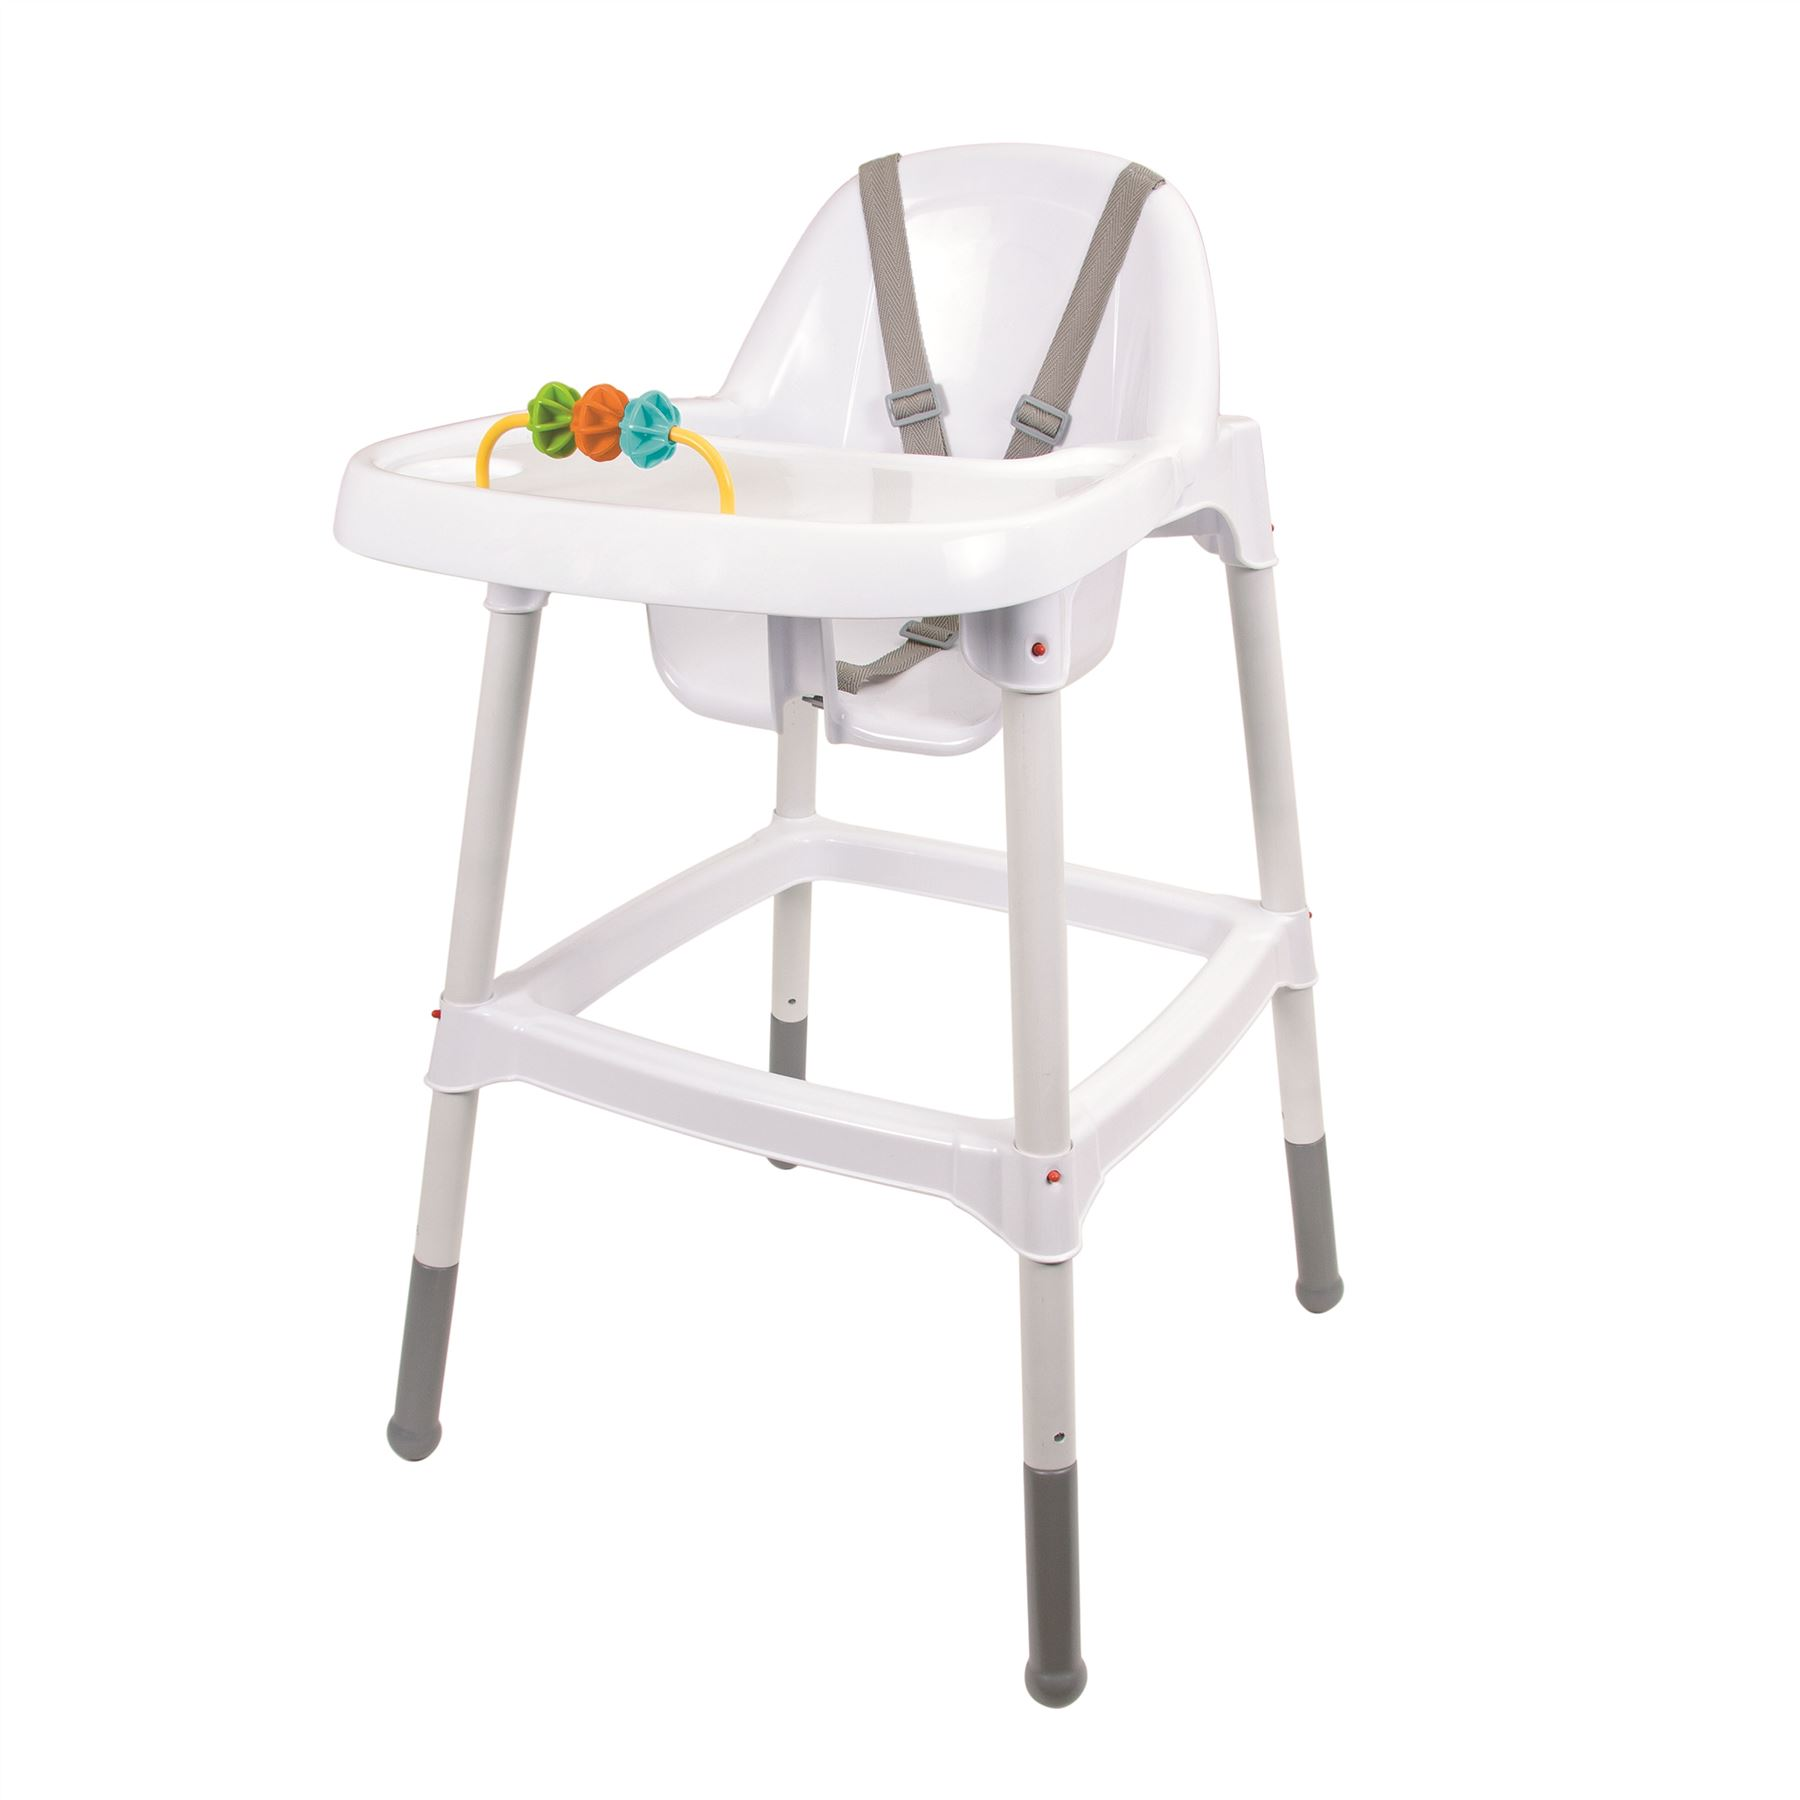 Baby Food Chair Details About Childrens Kids Baby High Chair With Tray Toy Feeding Safety Belt Food 6 M White